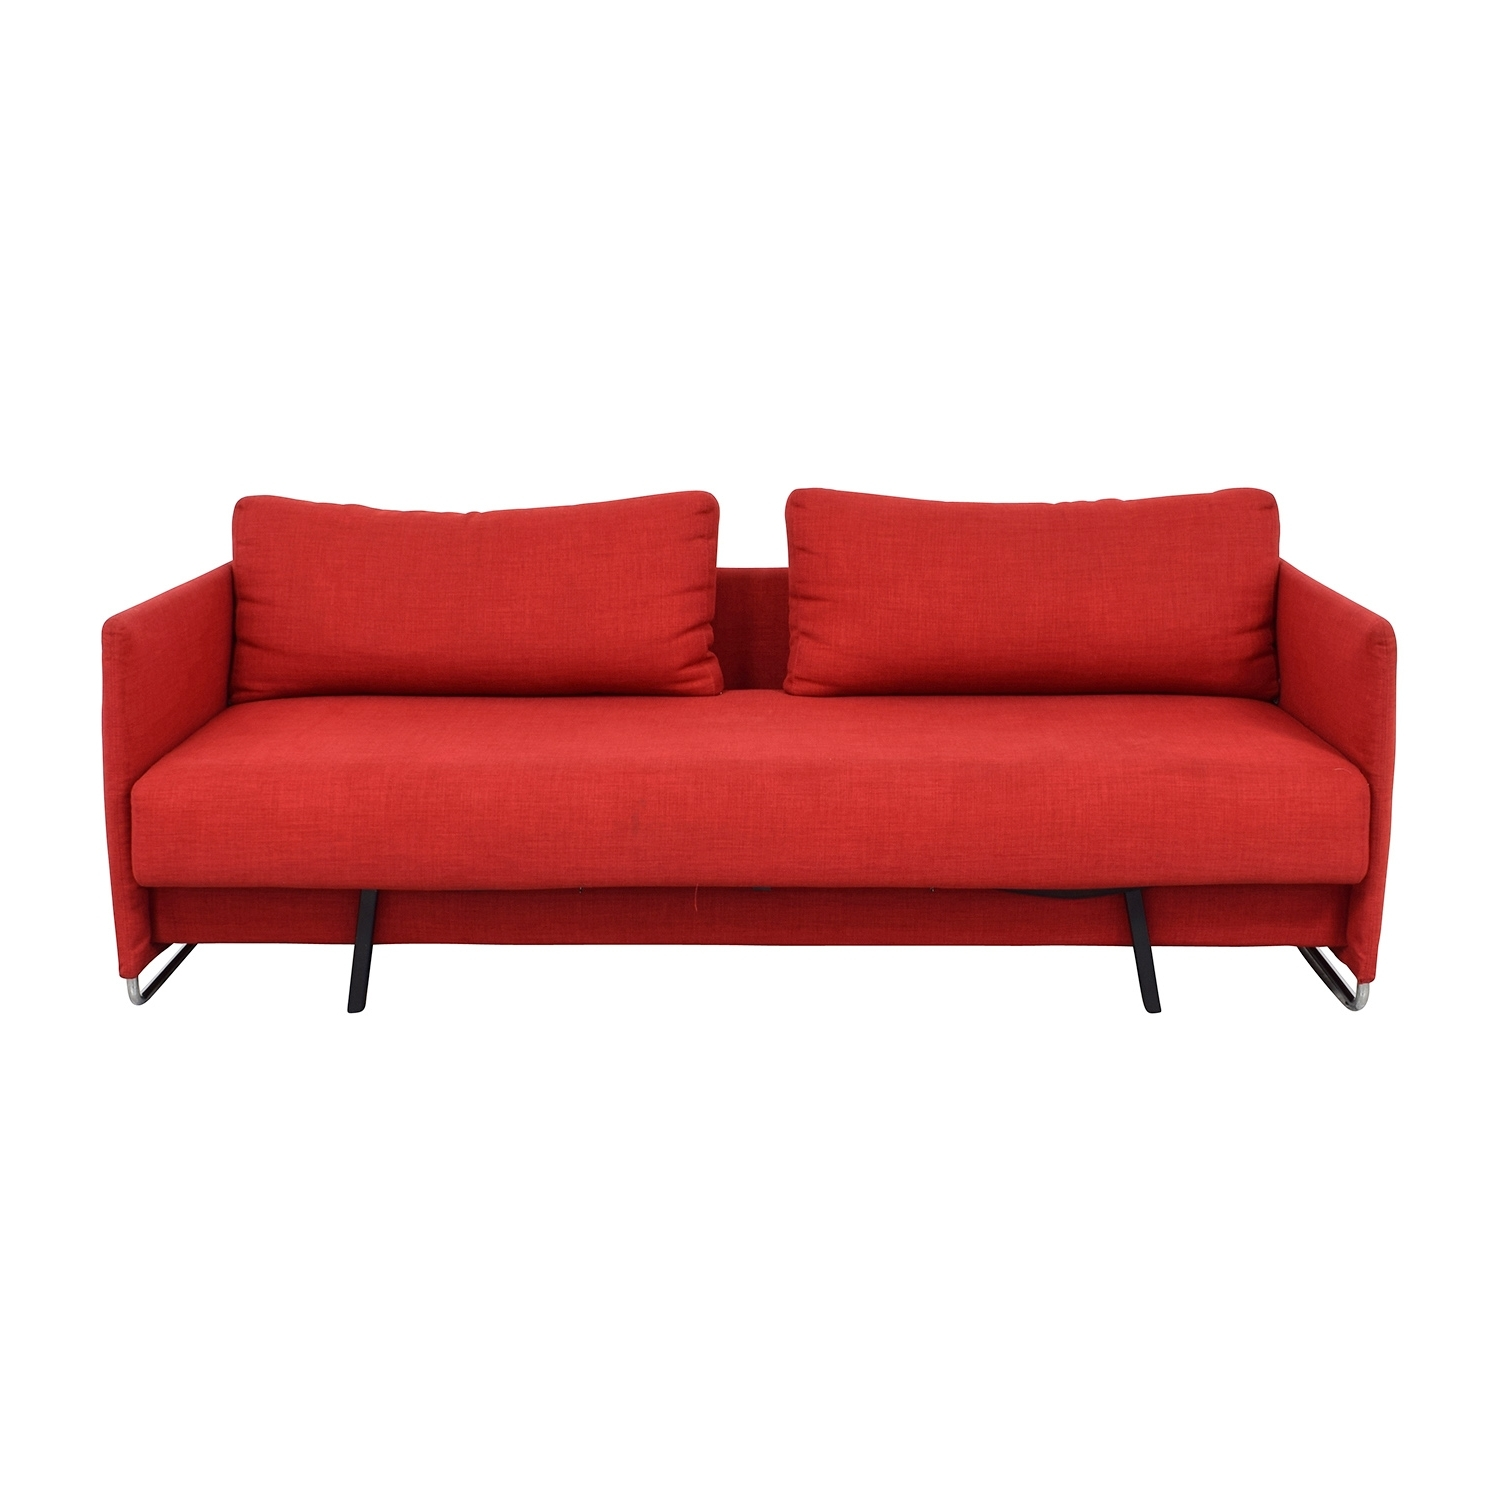 [%74% Off – Cb2 Cb2 Tandom Red Sleeper Sofa / Sofas In Well Known Red Sleeper Sofas|Red Sleeper Sofas Inside Fashionable 74% Off – Cb2 Cb2 Tandom Red Sleeper Sofa / Sofas|Fashionable Red Sleeper Sofas In 74% Off – Cb2 Cb2 Tandom Red Sleeper Sofa / Sofas|Widely Used 74% Off – Cb2 Cb2 Tandom Red Sleeper Sofa / Sofas Intended For Red Sleeper Sofas%] (View 8 of 20)